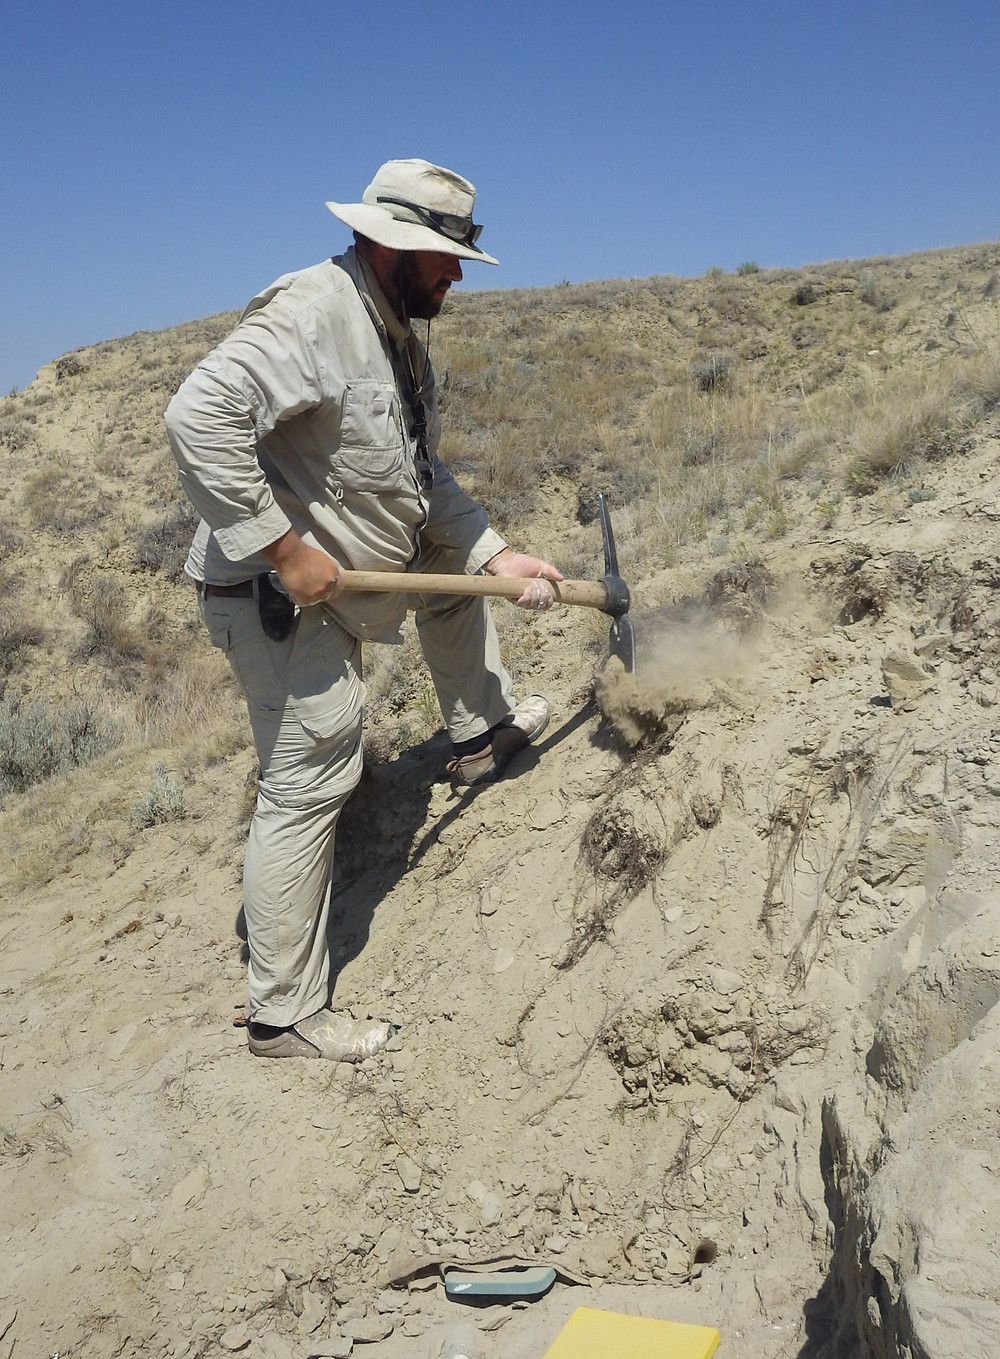 Site Manager Cory inspects the rock overburden above the dinosaur.